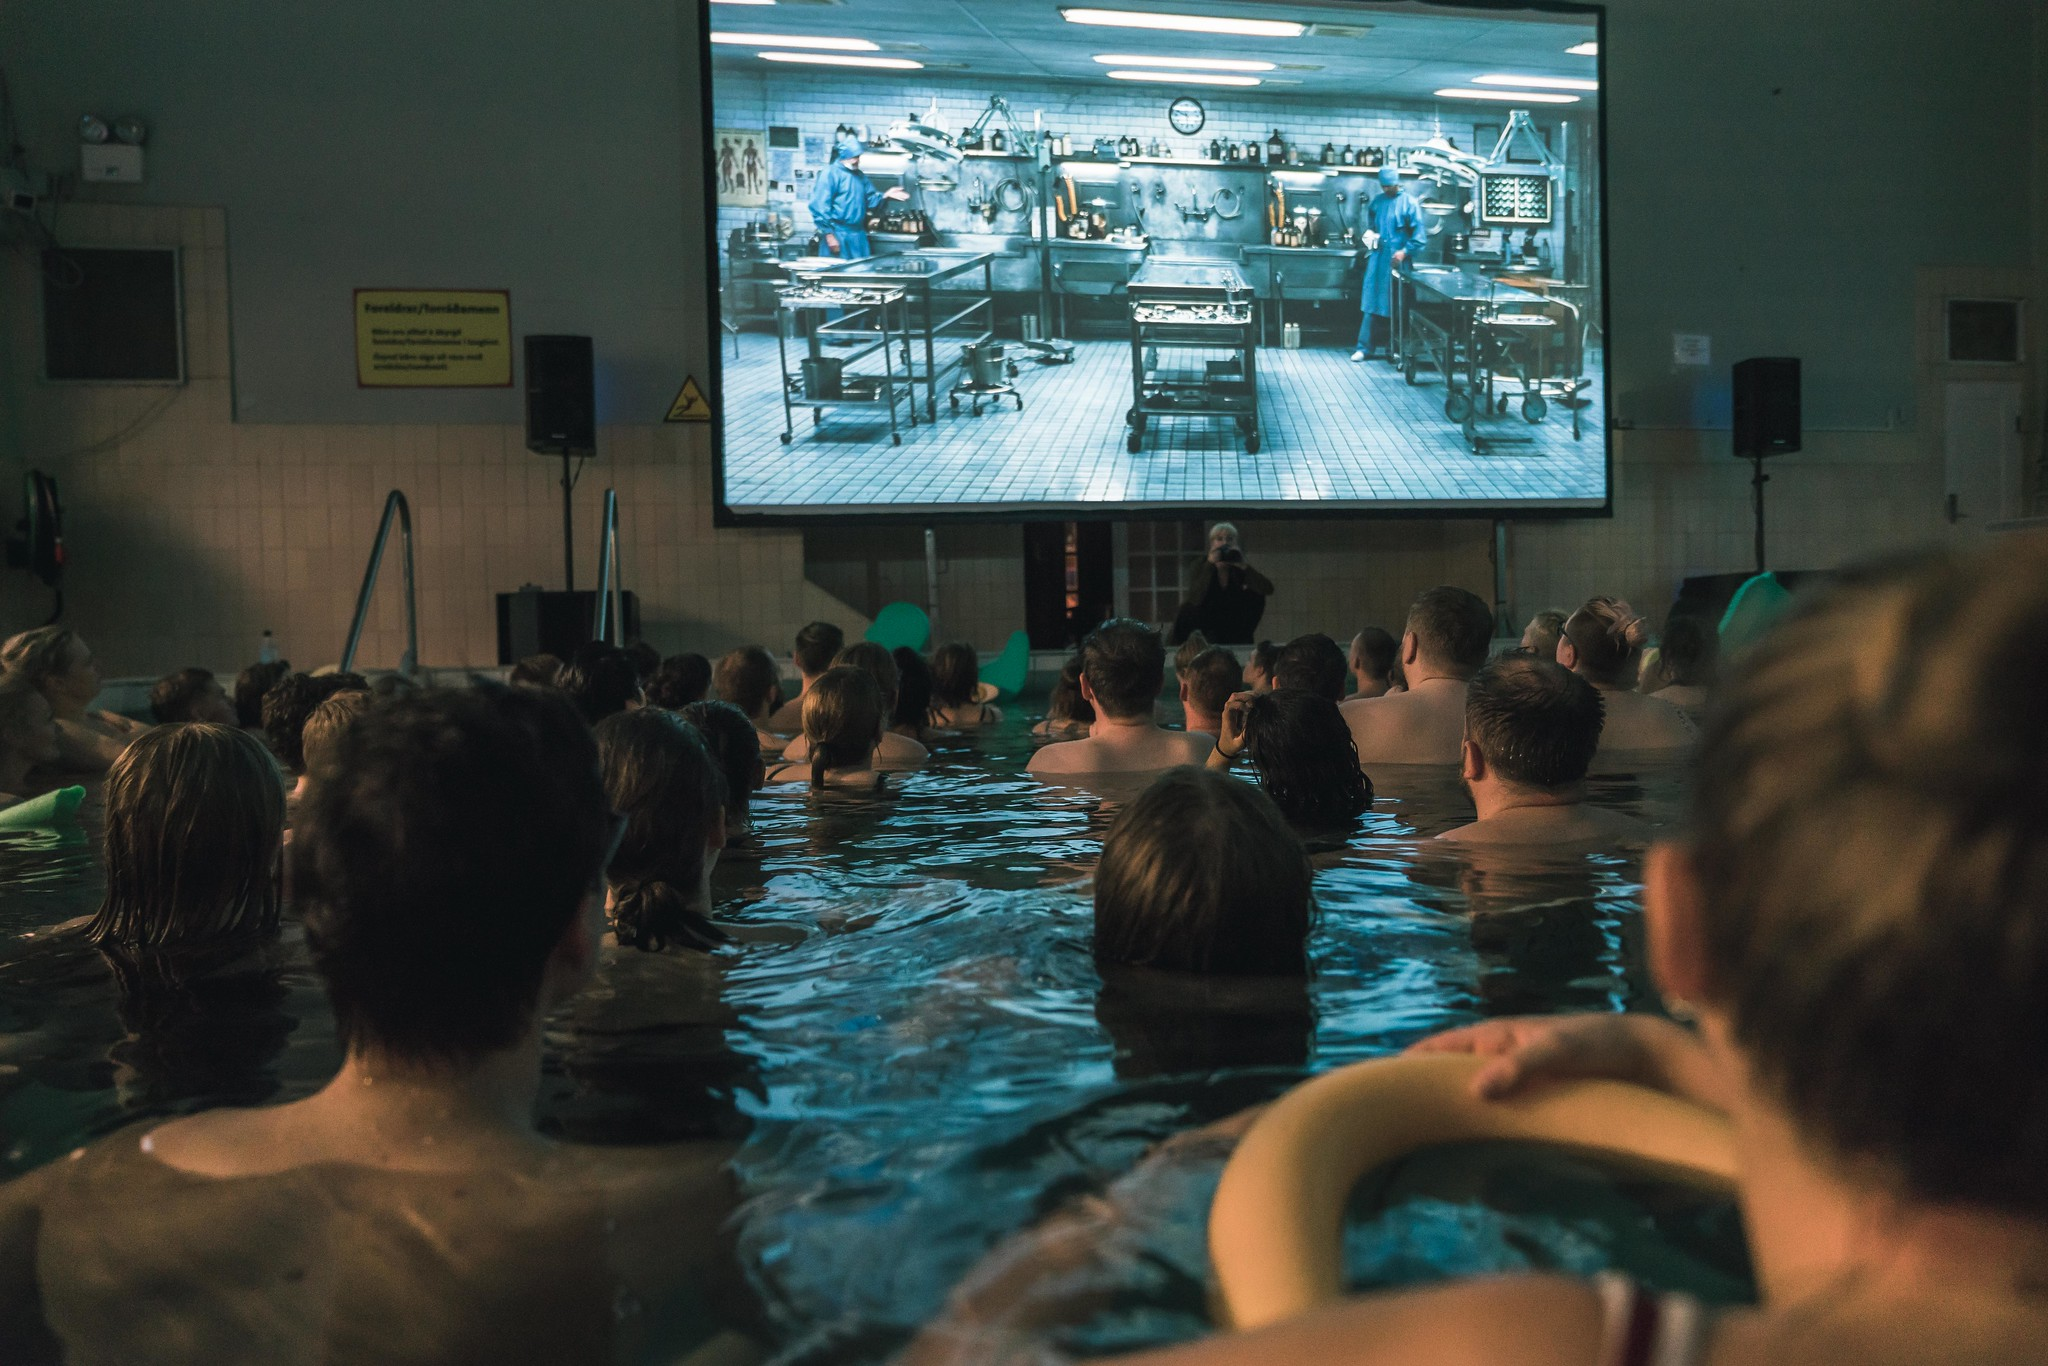 A group of people bathing in a public pool with a screen overhead that is playing a film as part of Riff International Film Festival